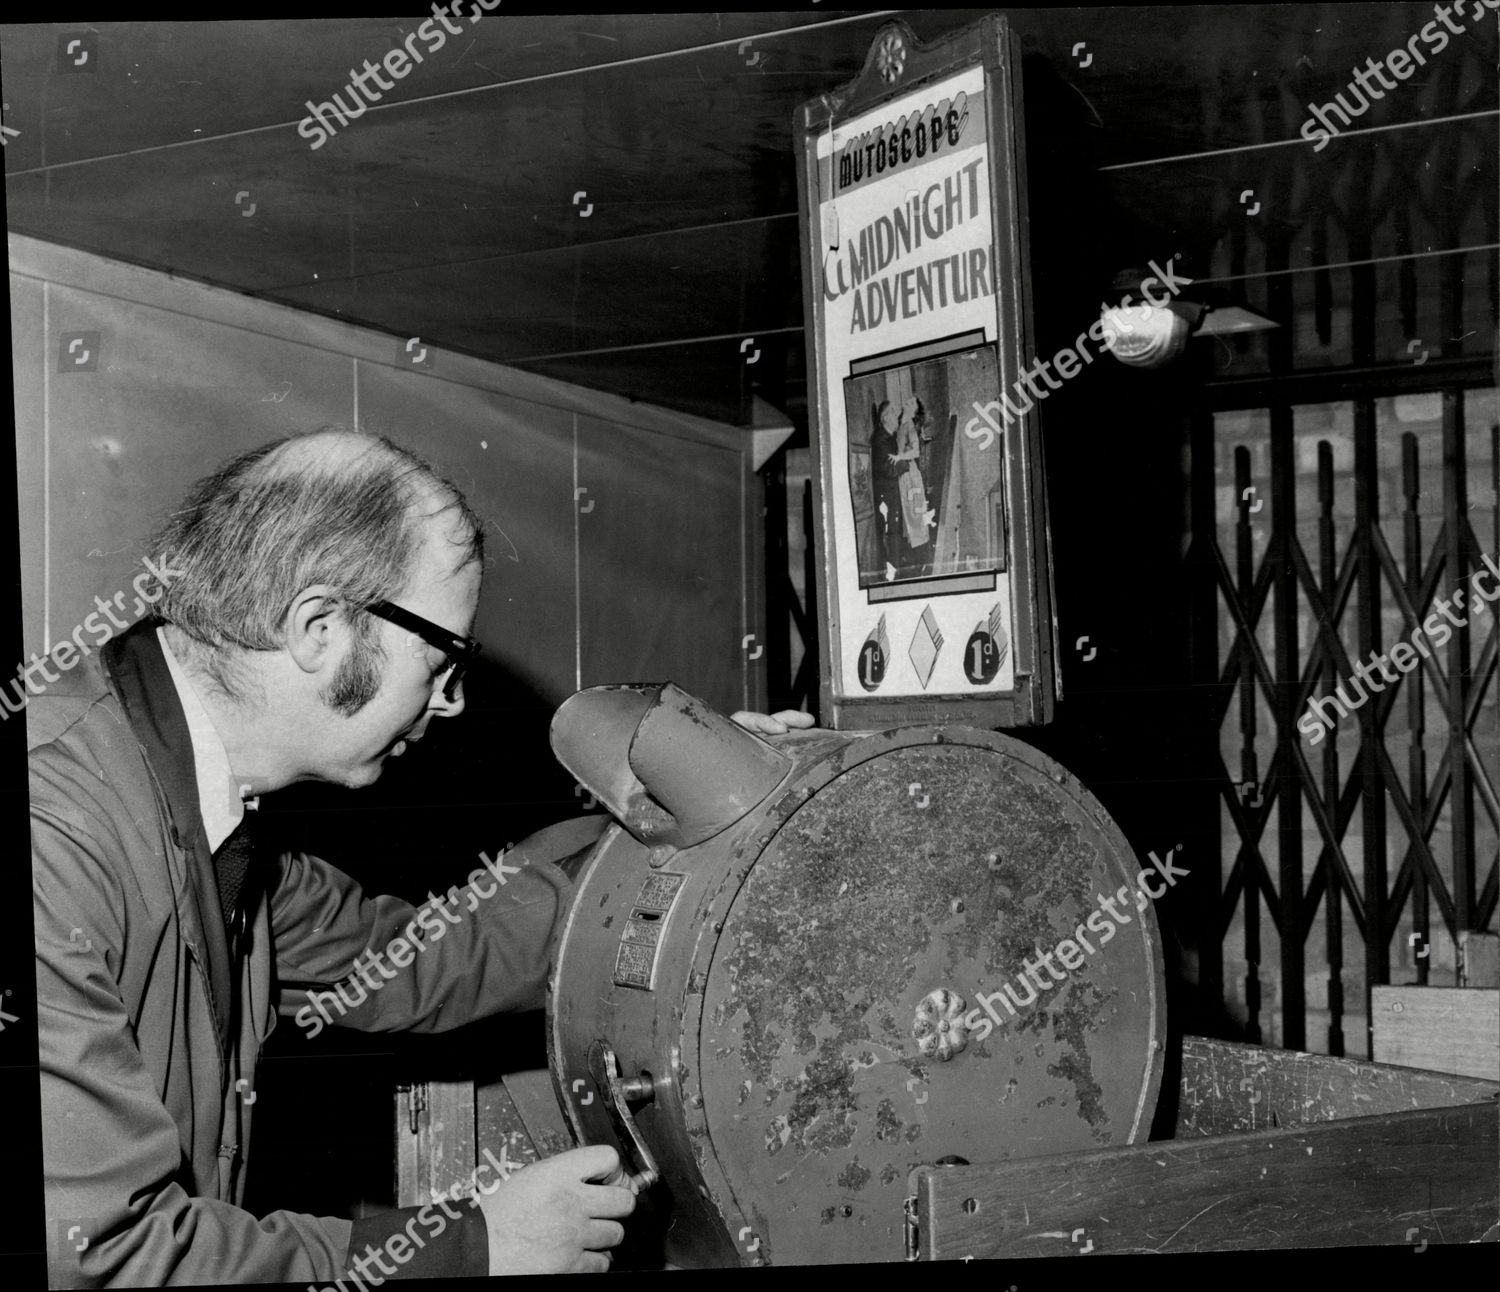 fairground-amusement-machines-auction-at-sothebys-what-the-butler-saw-1975-shutterstock-editor...jpg